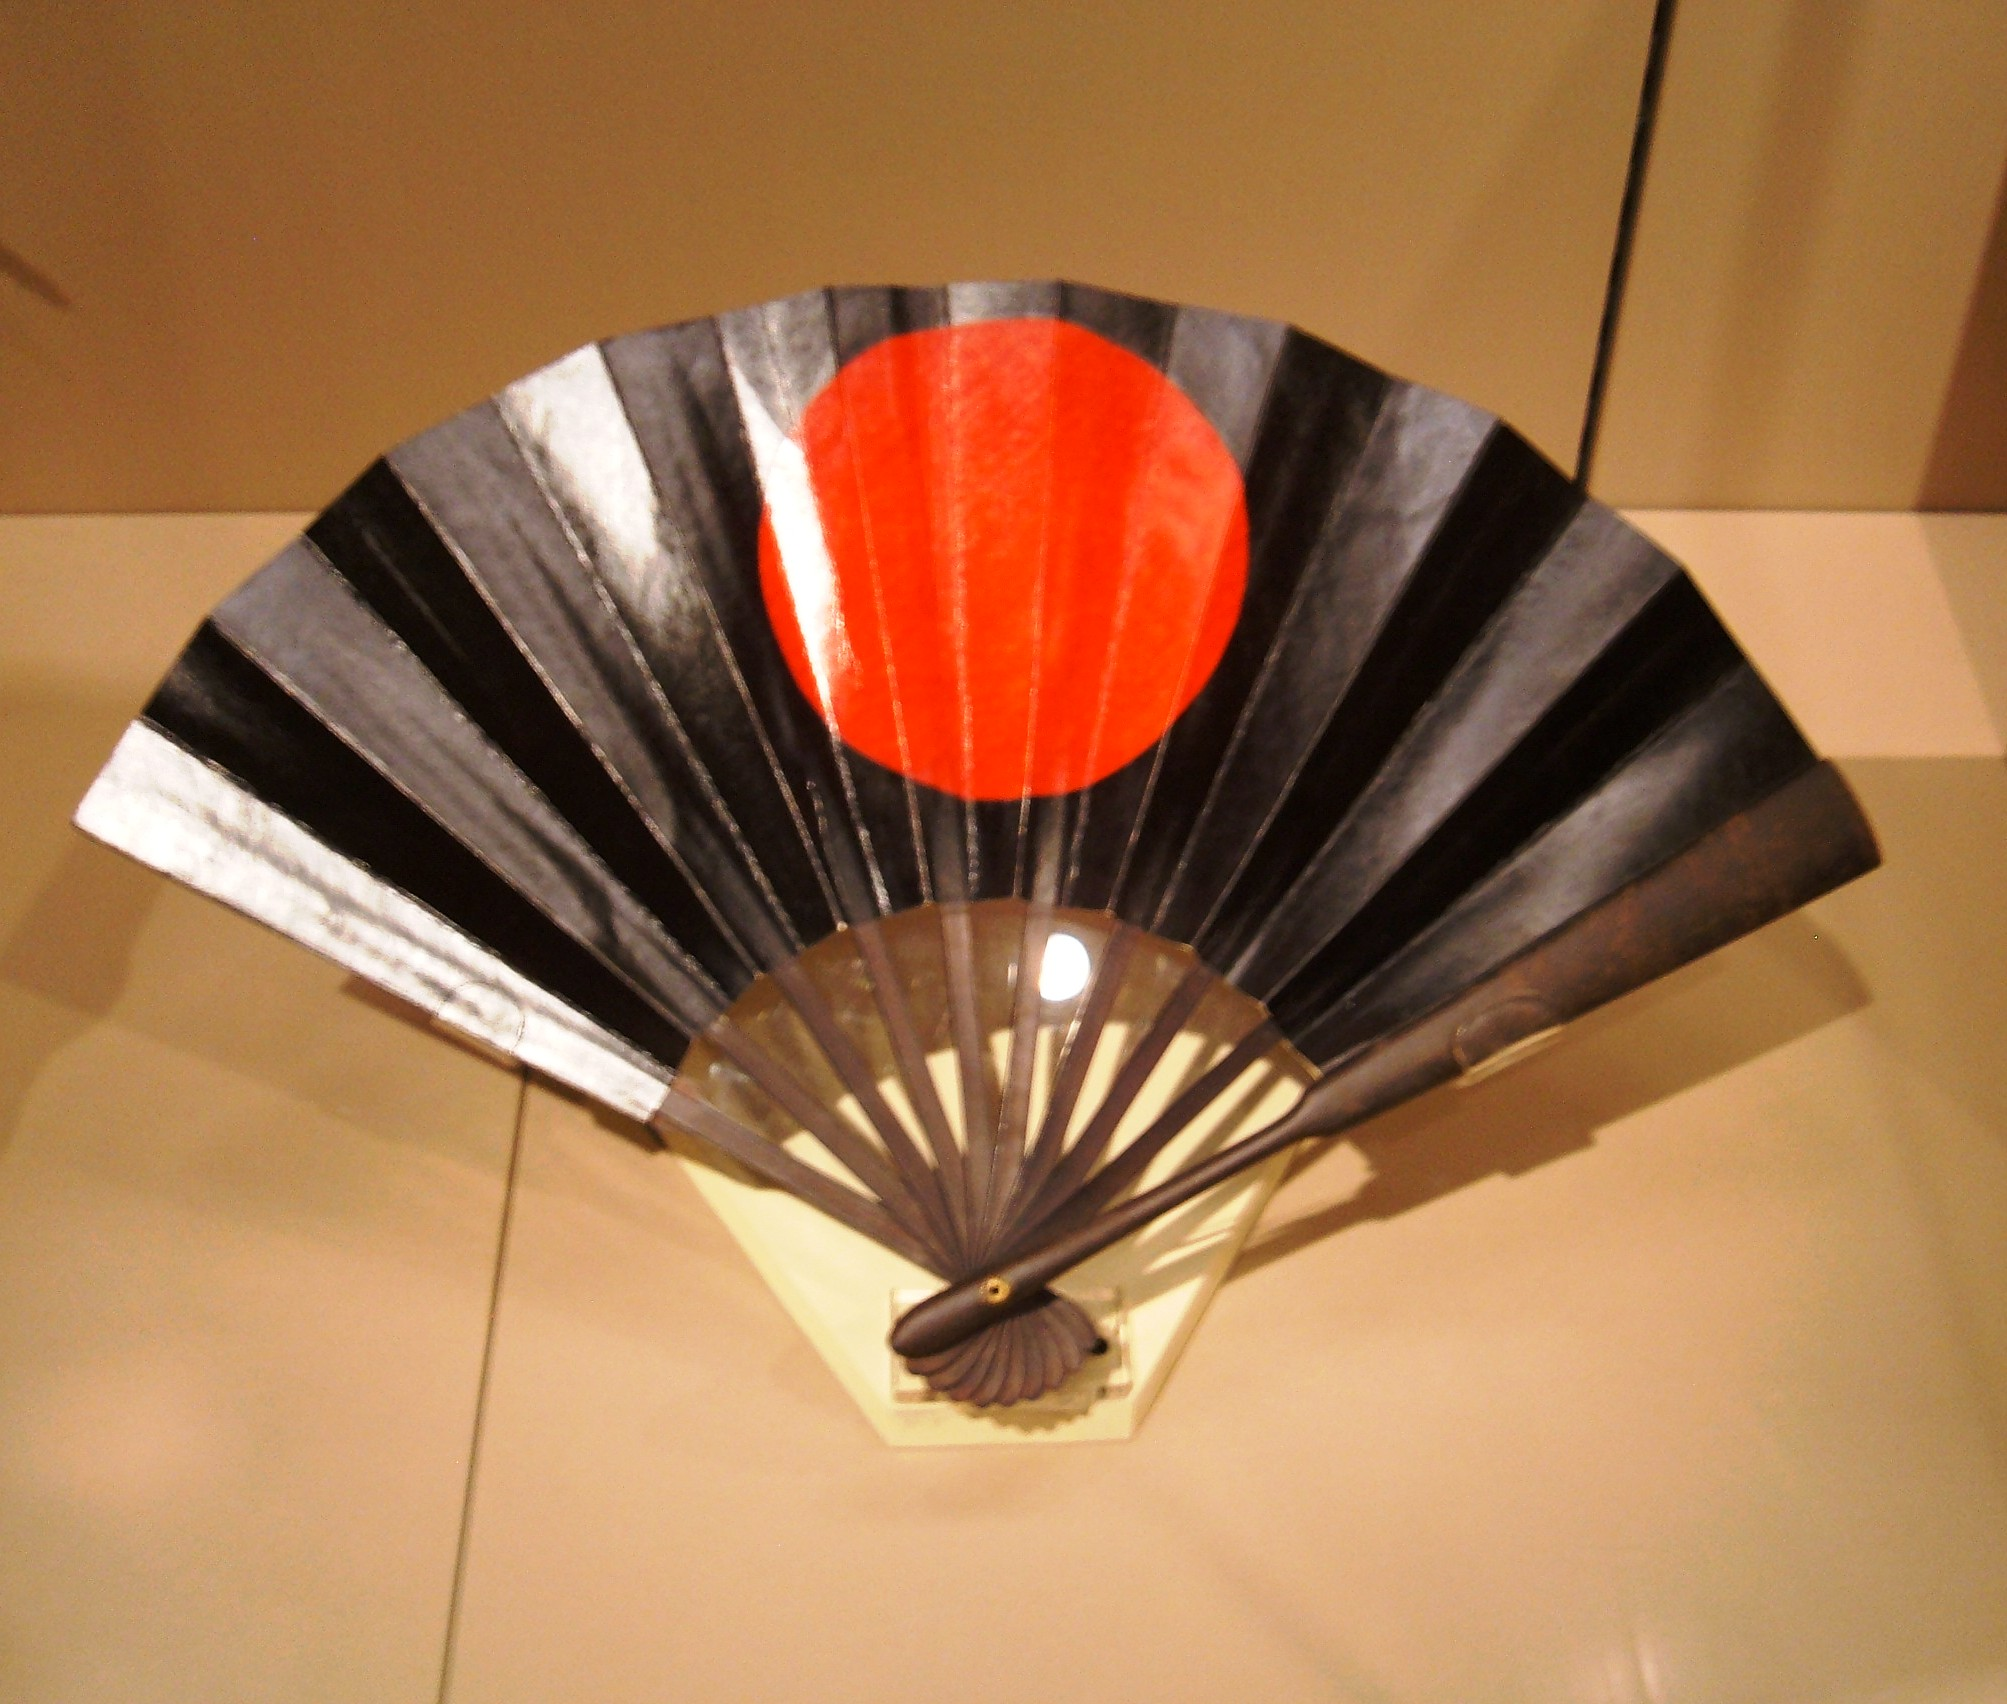 Japanese war fan - Wikipedia